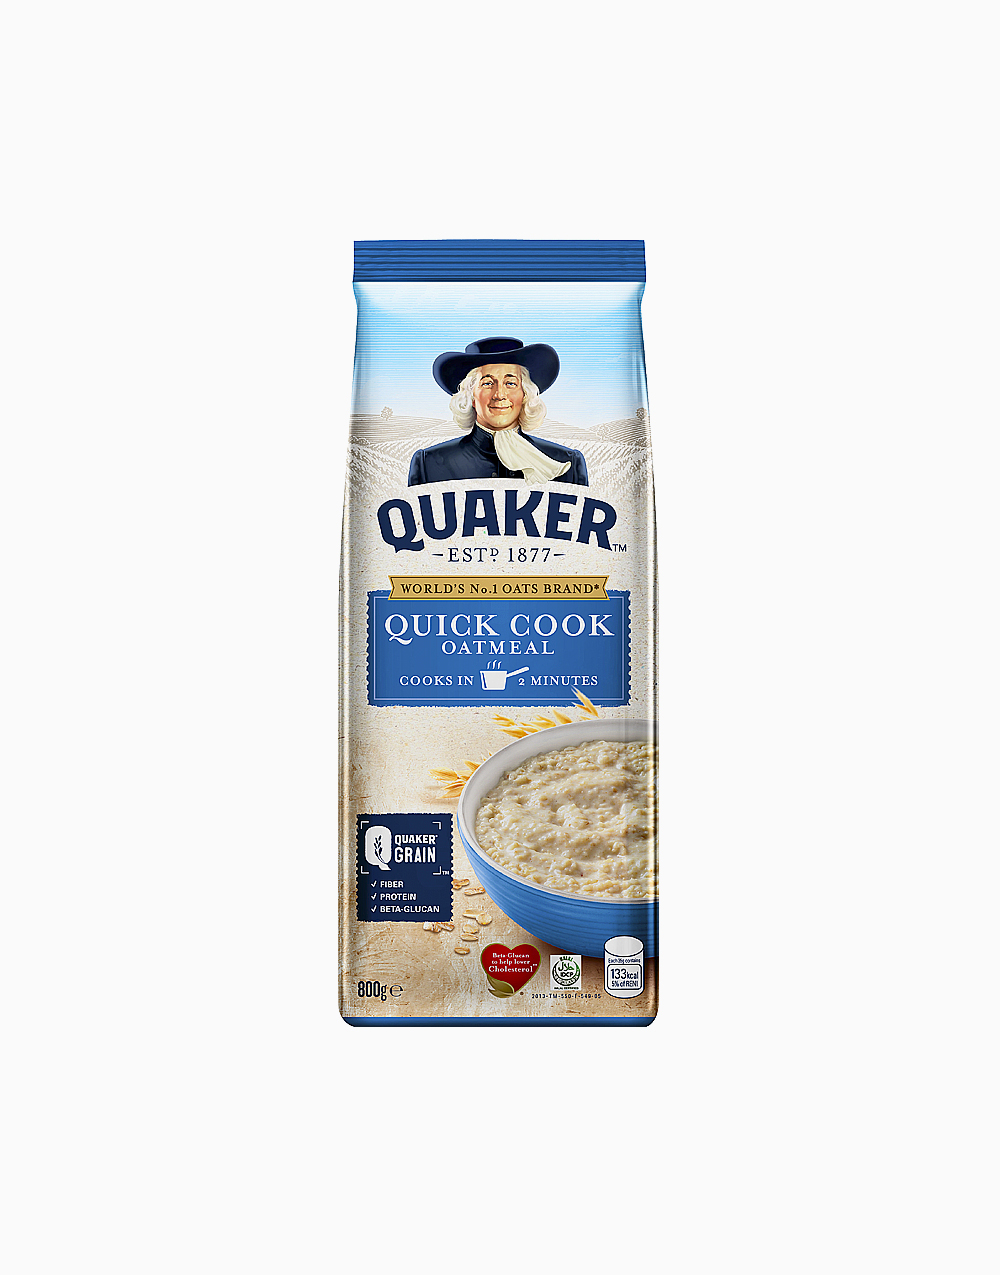 Quick Cooking Oatmeal (800g) by Quaker